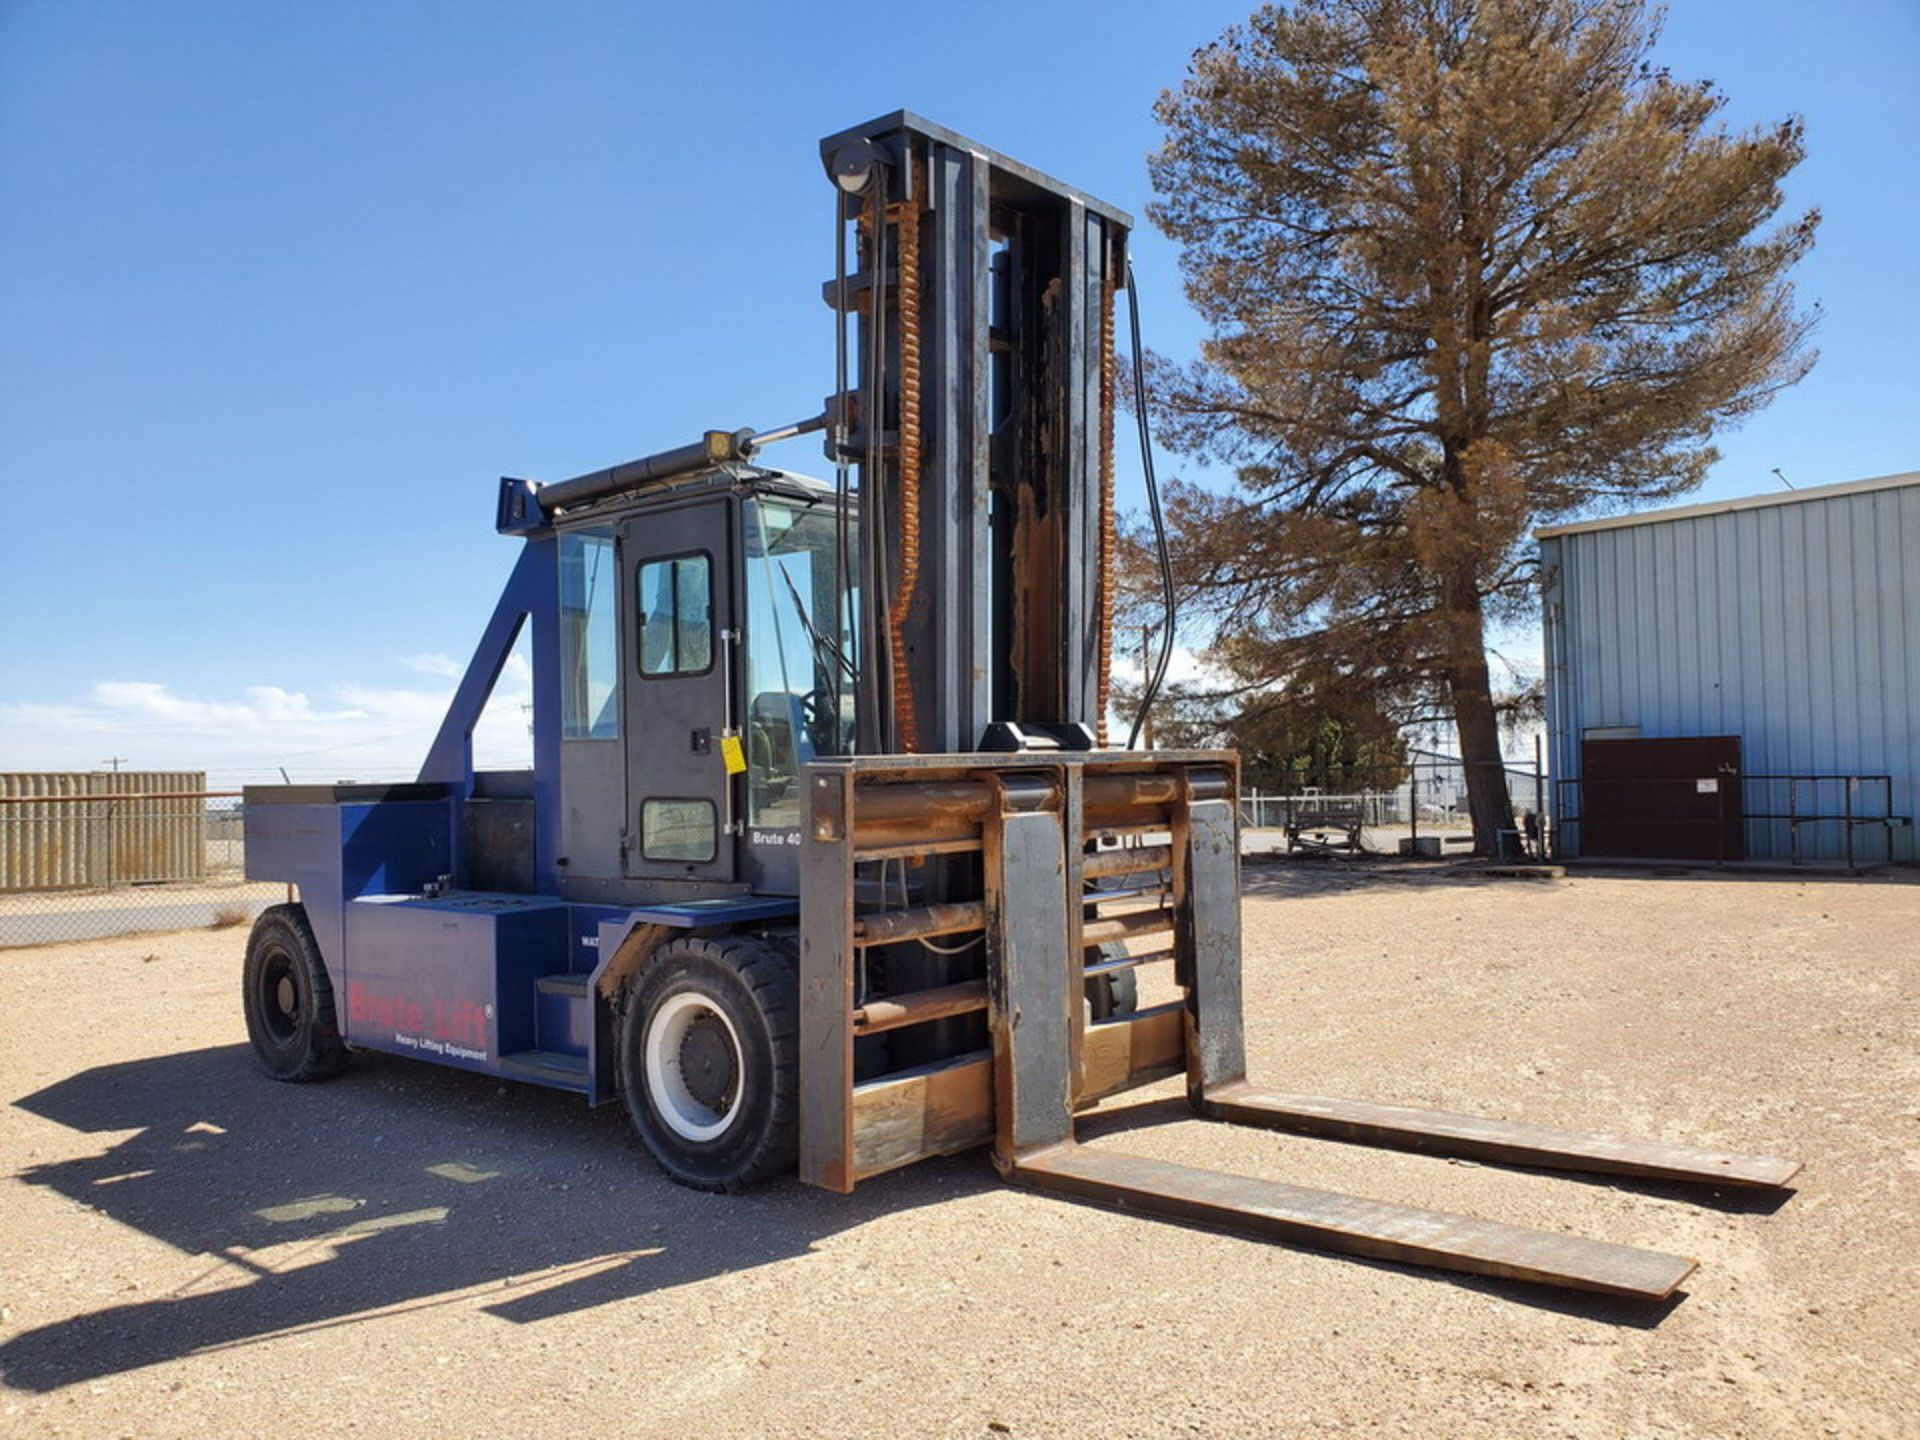 2012 Brute Lift BT40-48 Forklift 40H Cap., Engine Hrs: 3,389.3